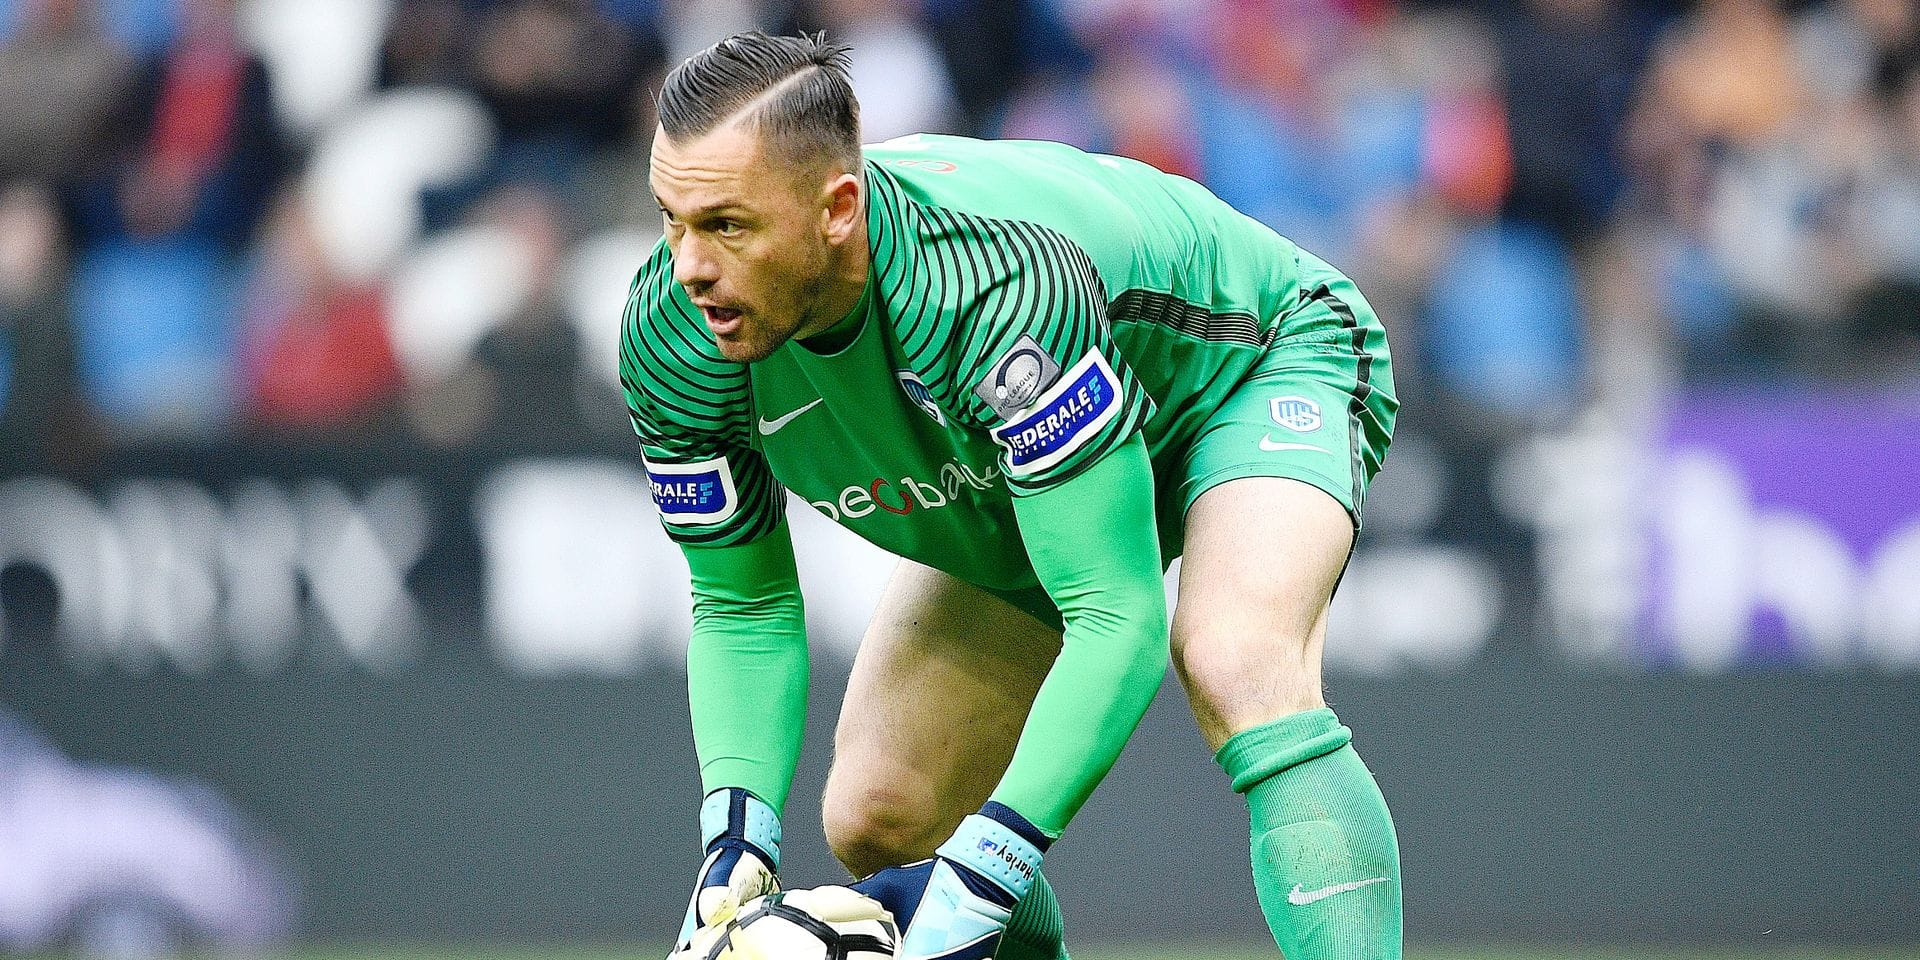 Genk's goalkeeper Danny Vukovic pictured in action during the Jupiler Pro League match between KRC Genk and Sporting Charleroi, in Genk, Sunday 13 May 2018, on day nine of the Play-Off 1 of the Belgian soccer championship. BELGA PHOTO YORICK JANSENS